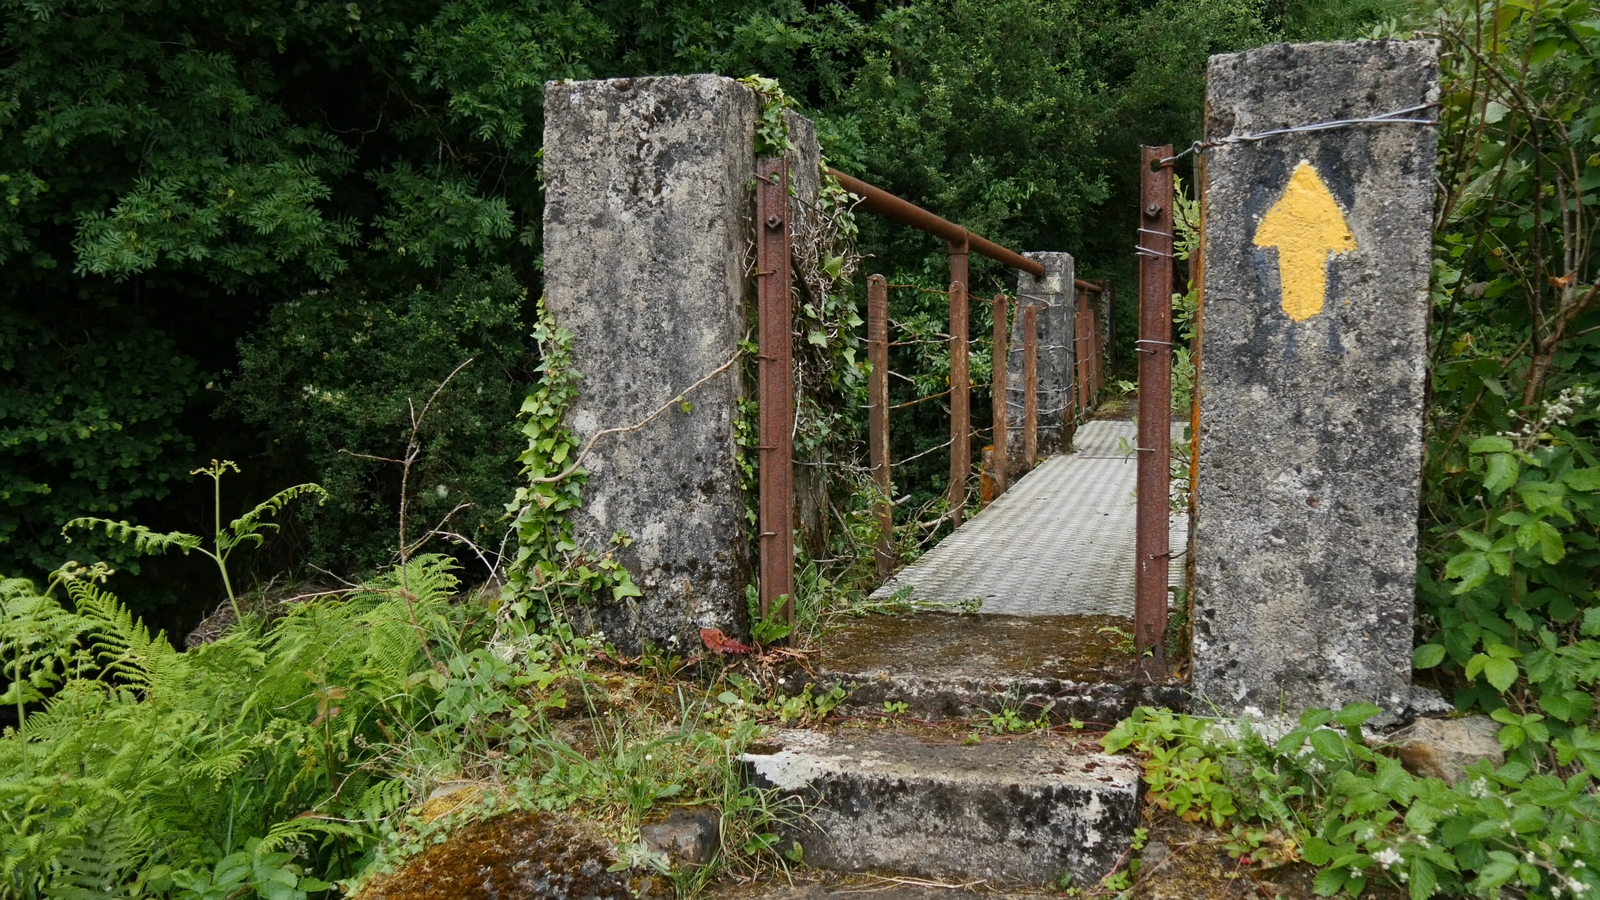 Image - Miner's Way in Arigna, Co. Roscommon